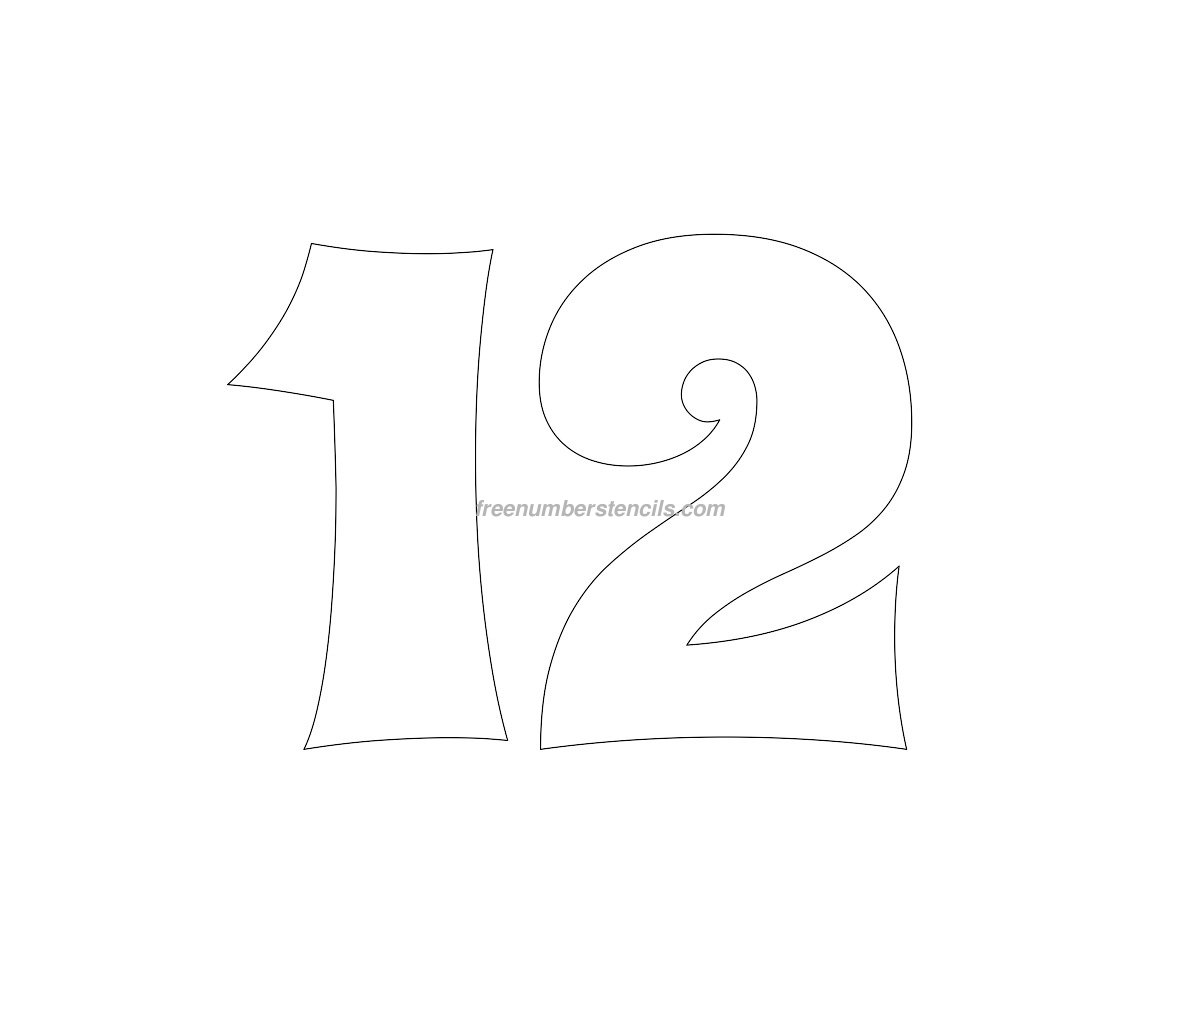 Free Groovy 12 Number Stencil